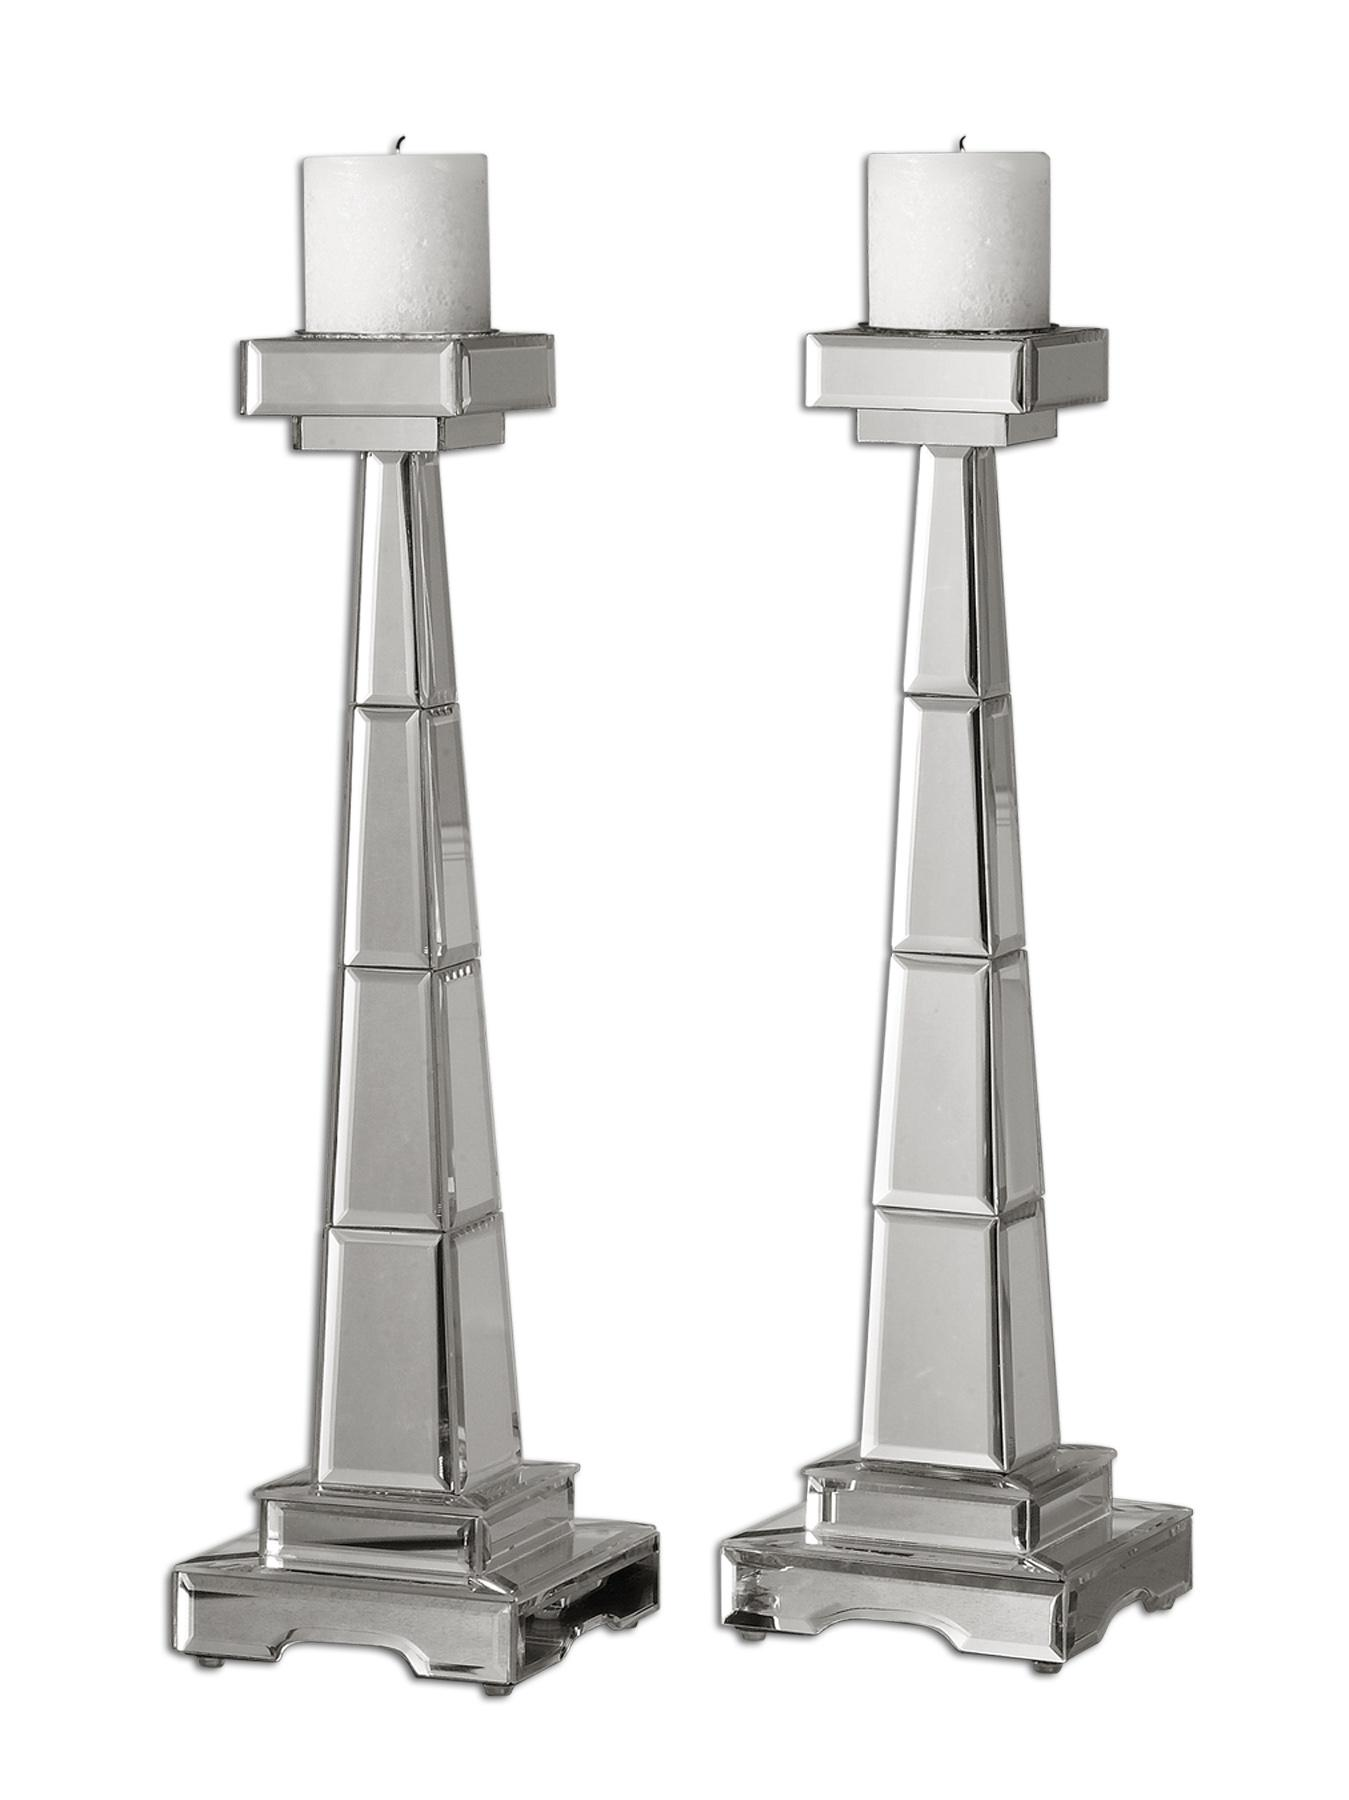 Uttermost Accessories Alanna Candleholders Set of 2 - Item Number: 19597